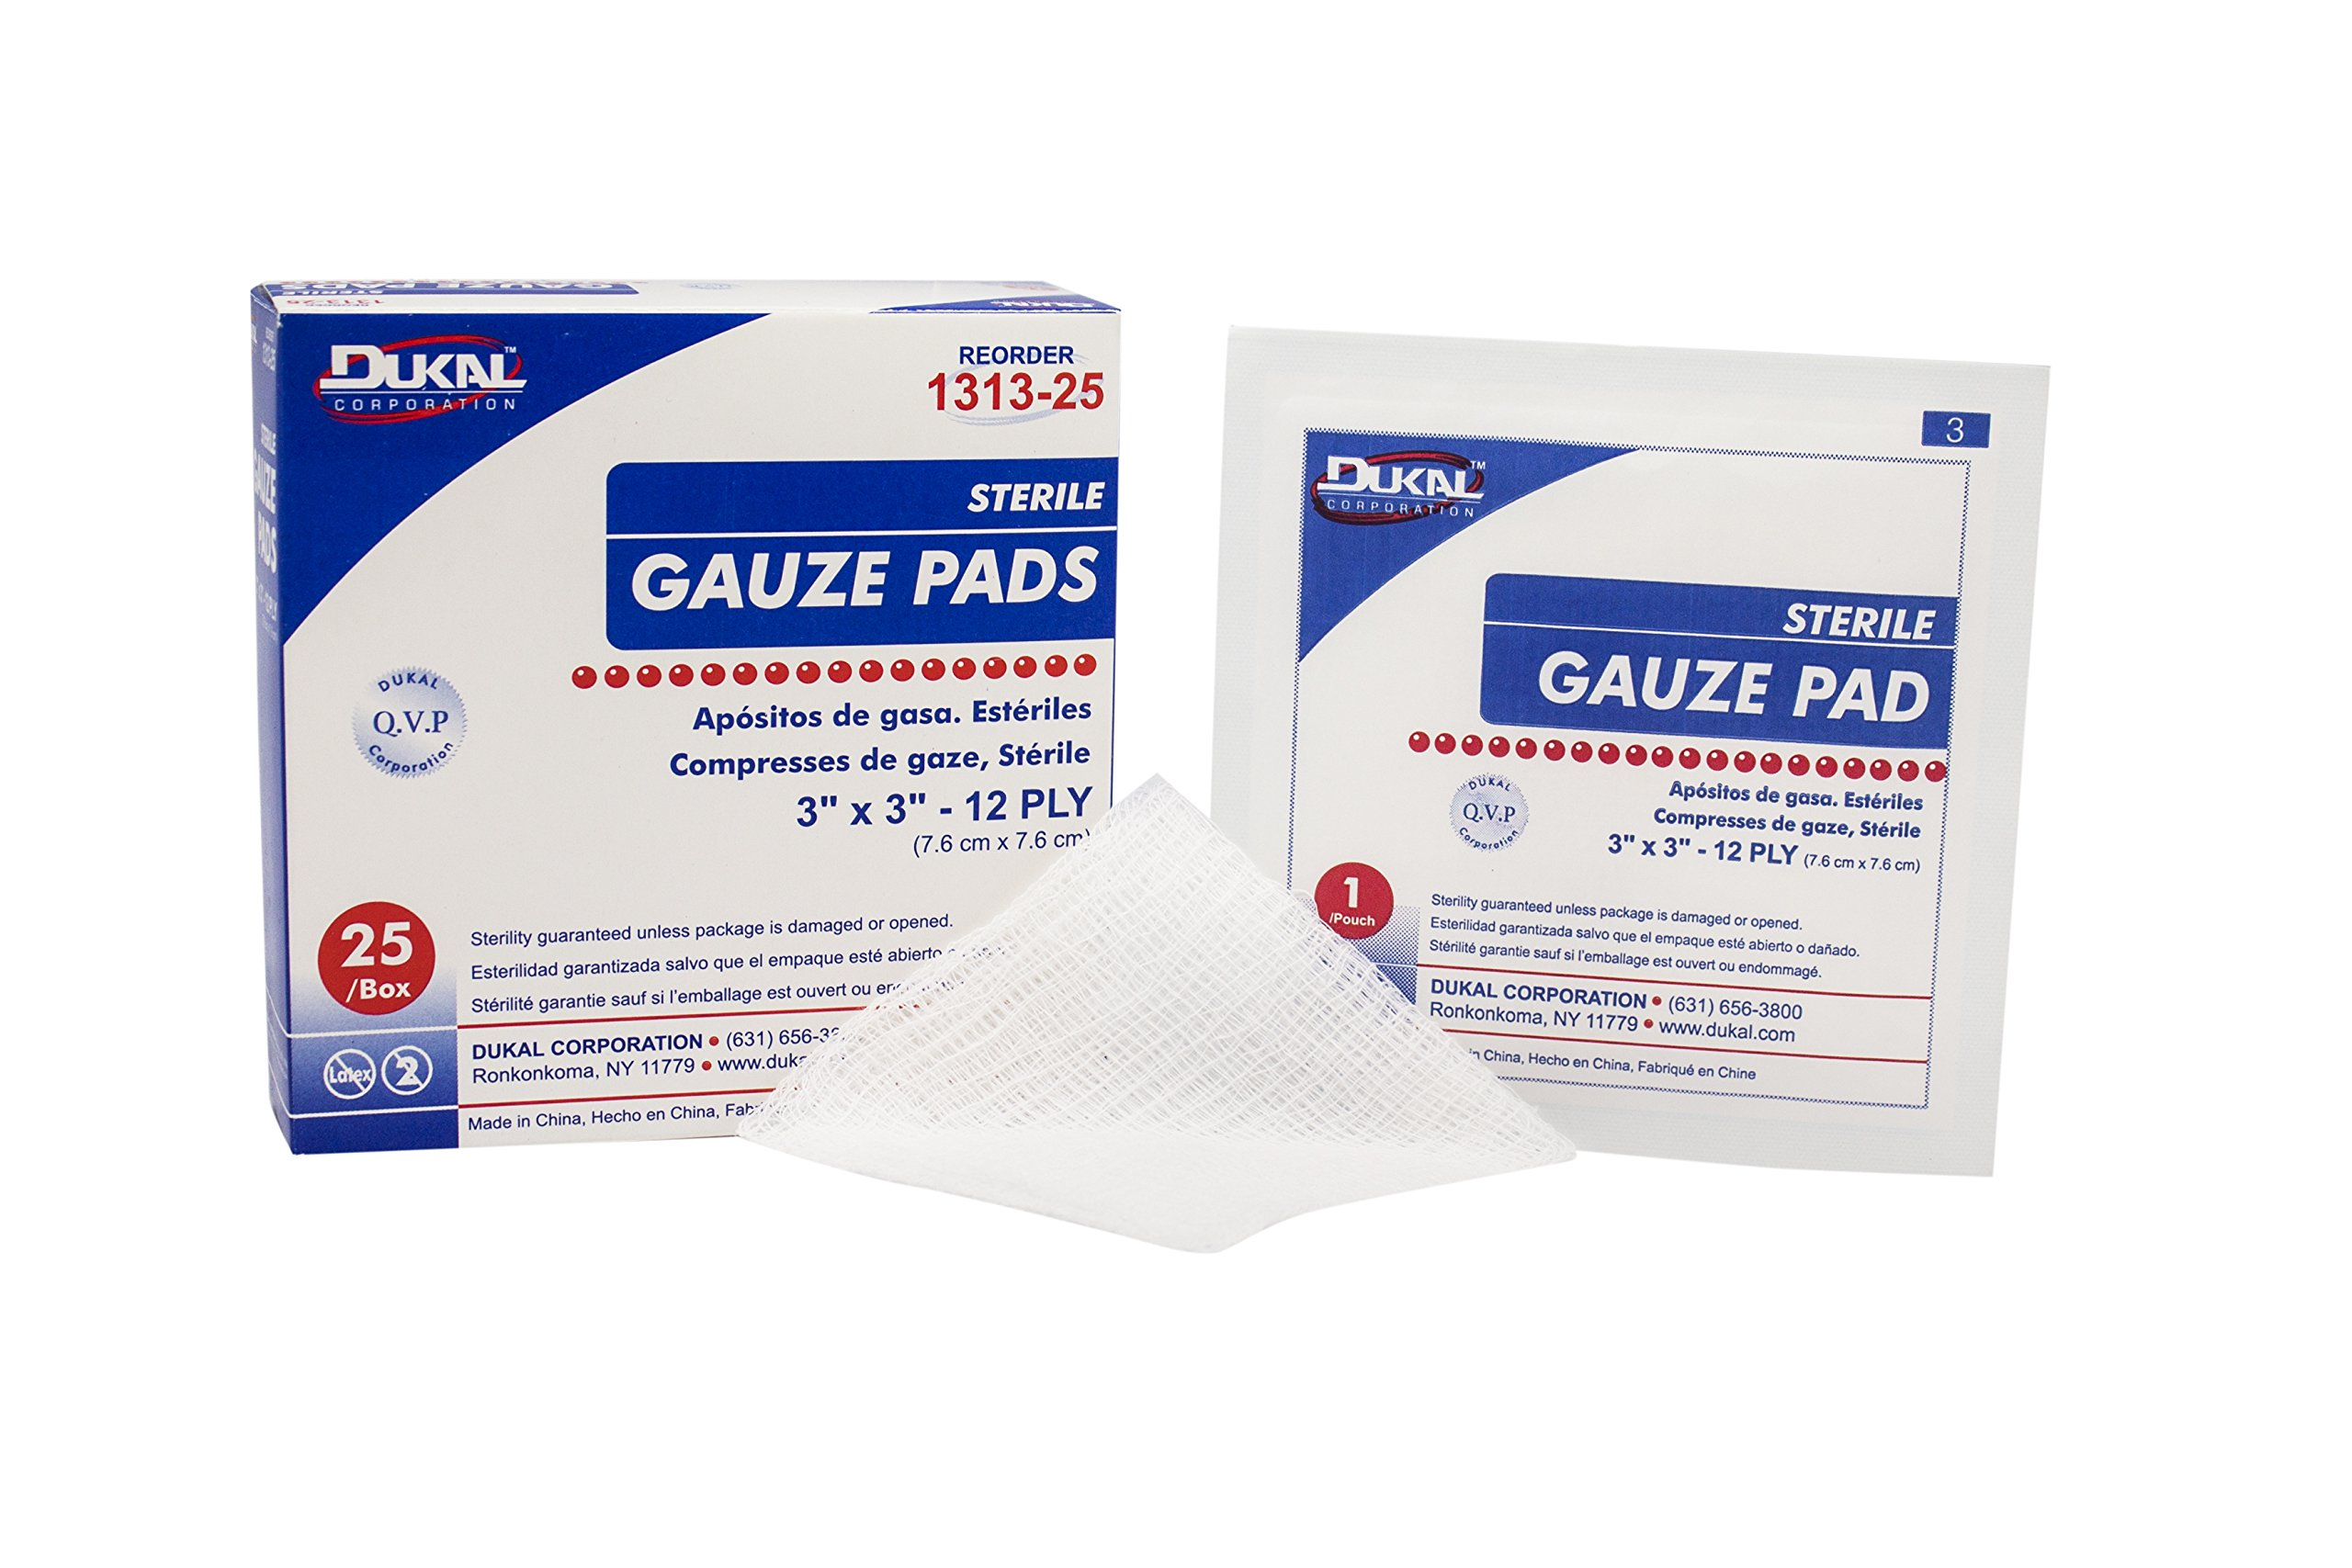 Dukal 1312-36B Gauze Pad, 12-Ply, Sterile, 3'' x 3'' (Pack of 3600)